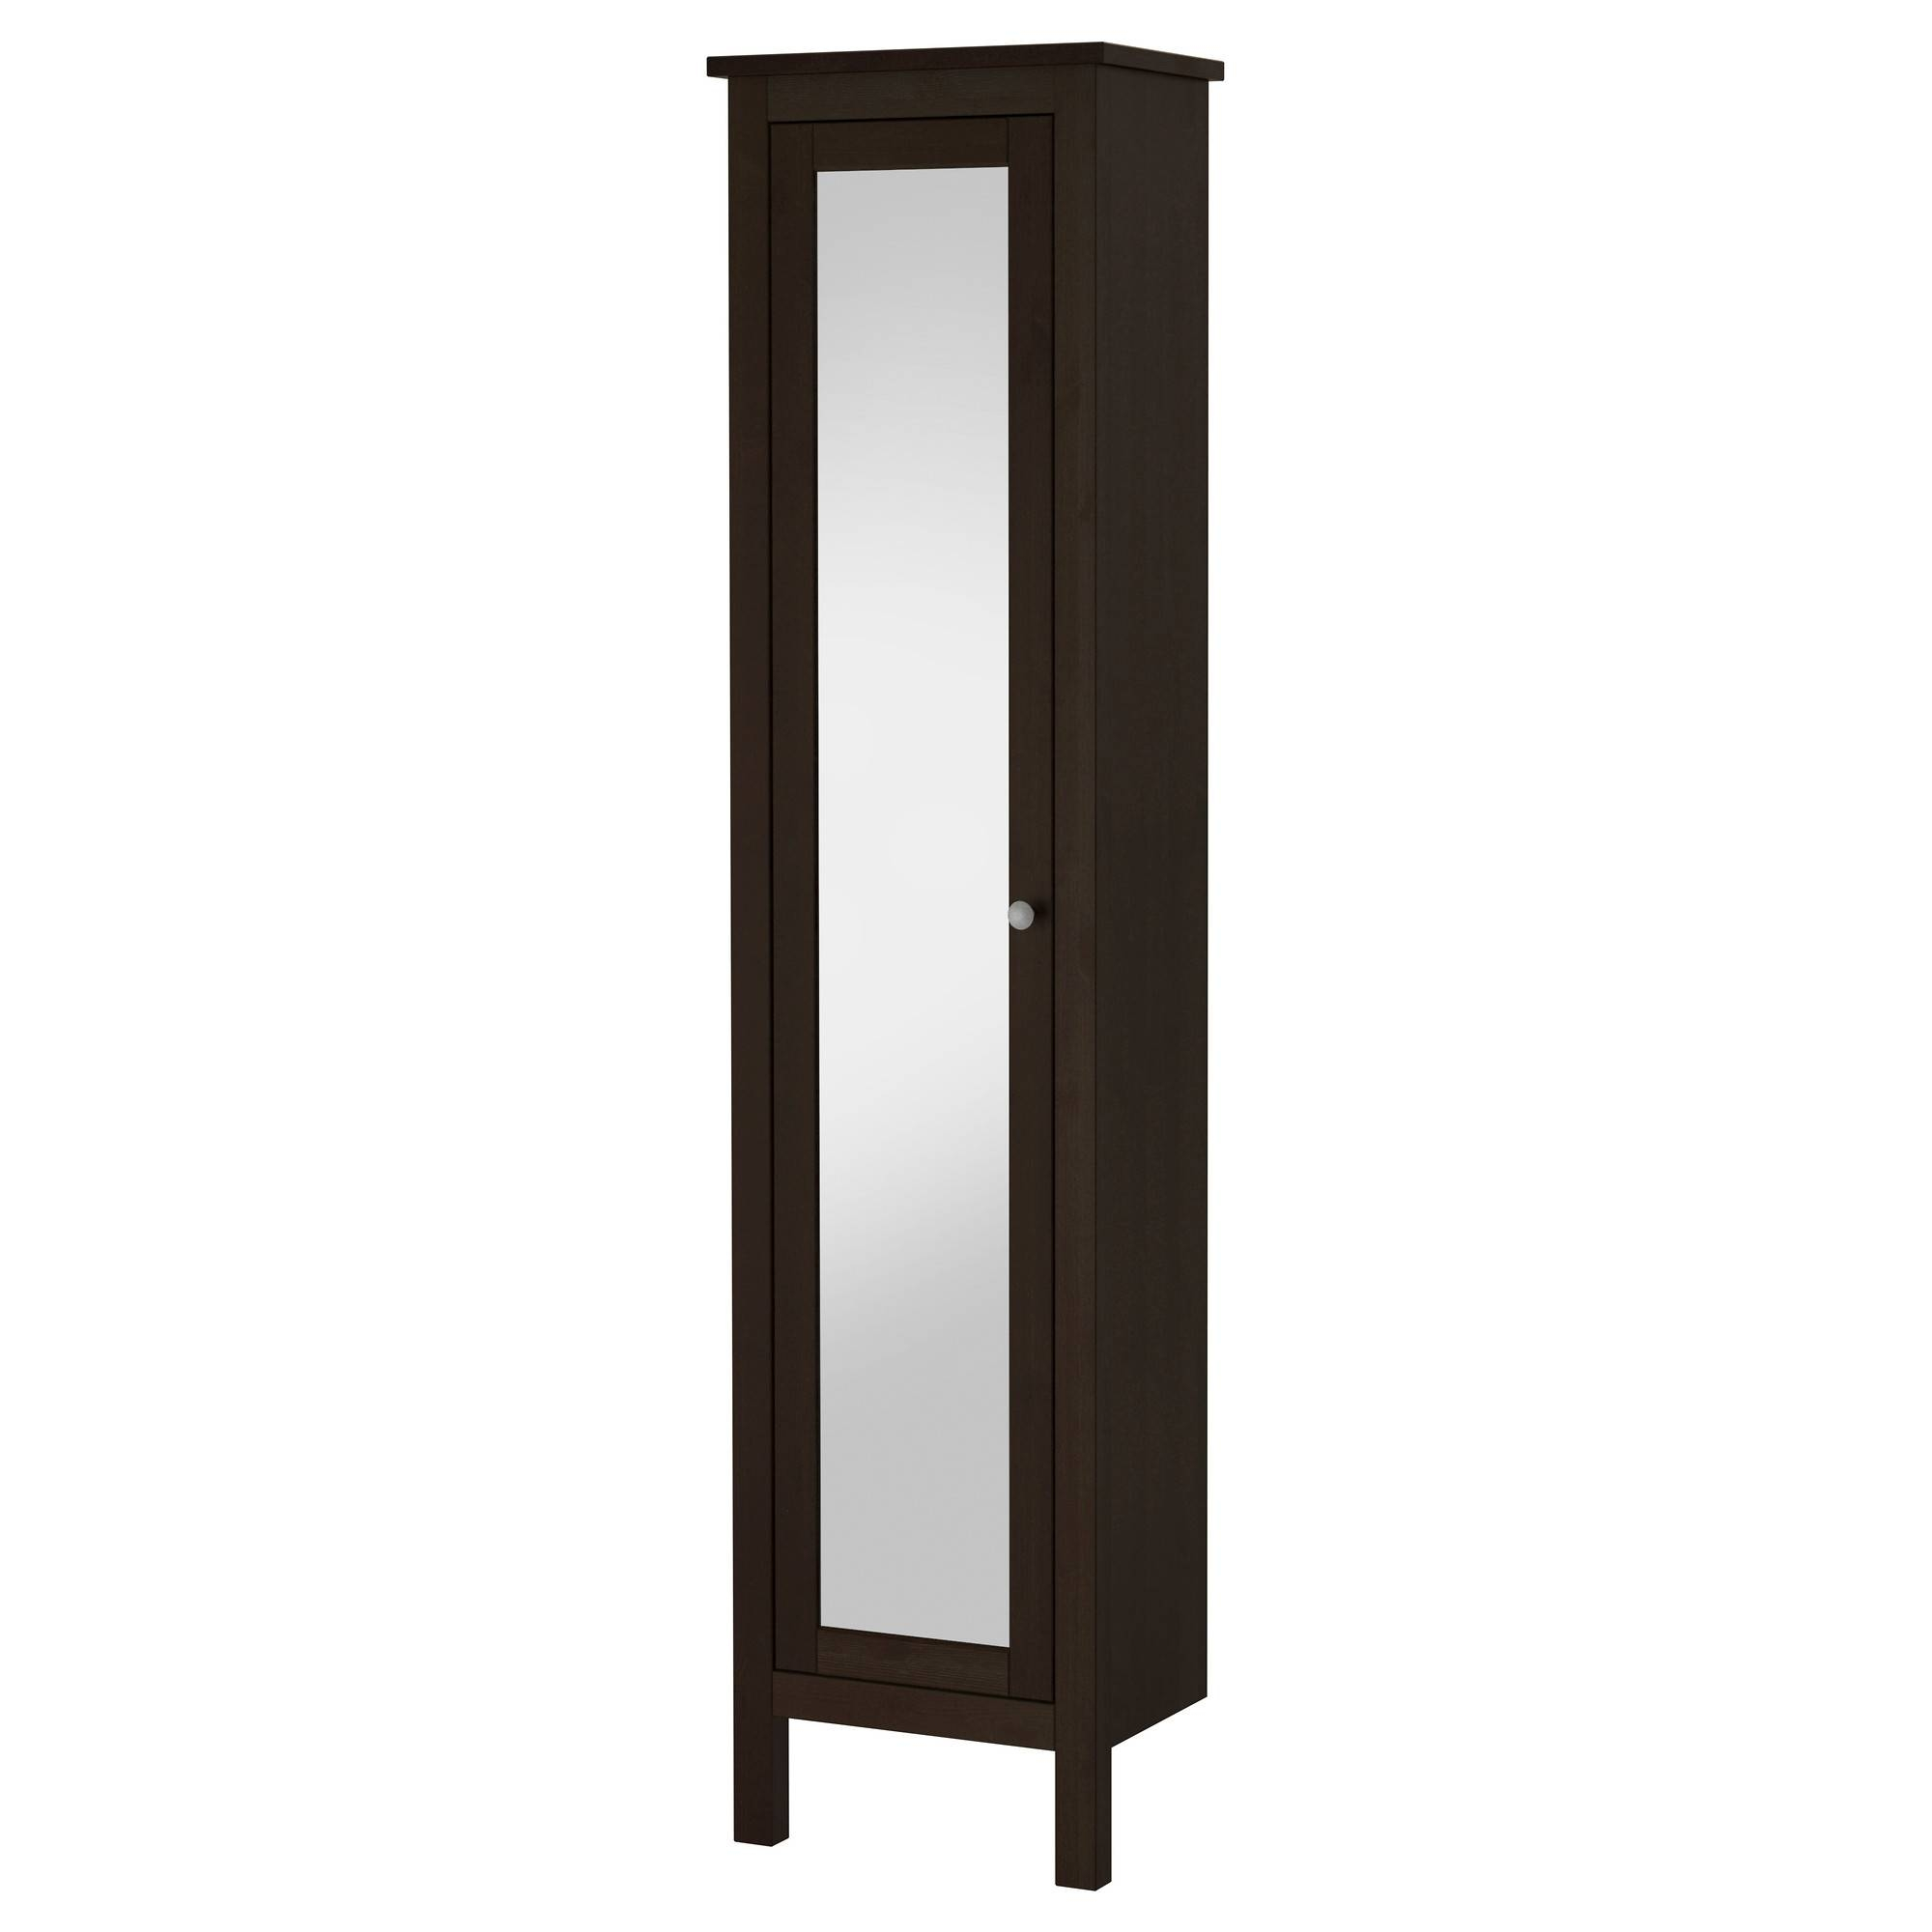 Hemnes High Cabinet With Mirror Door - Black-Brown Stain - Ikea throughout Black Cabinet Mirrors (Image 9 of 15)